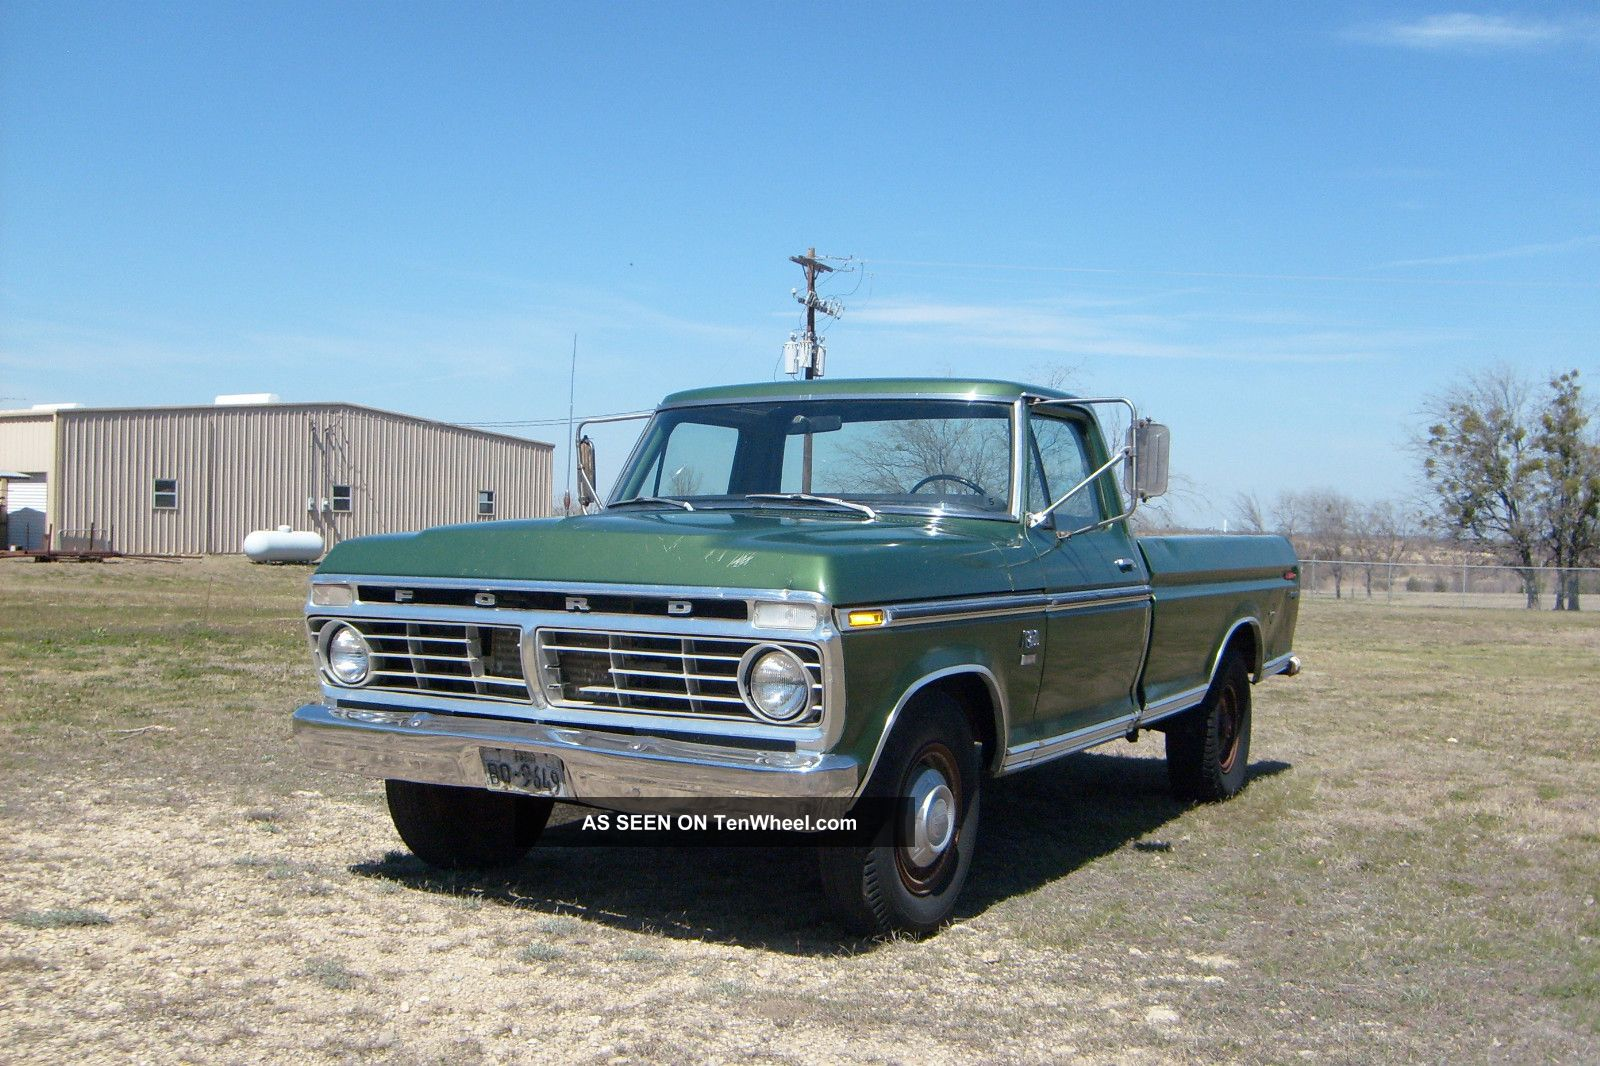 1974 ford f250 ranger camper special 460 engine f 250 photo 2 1974